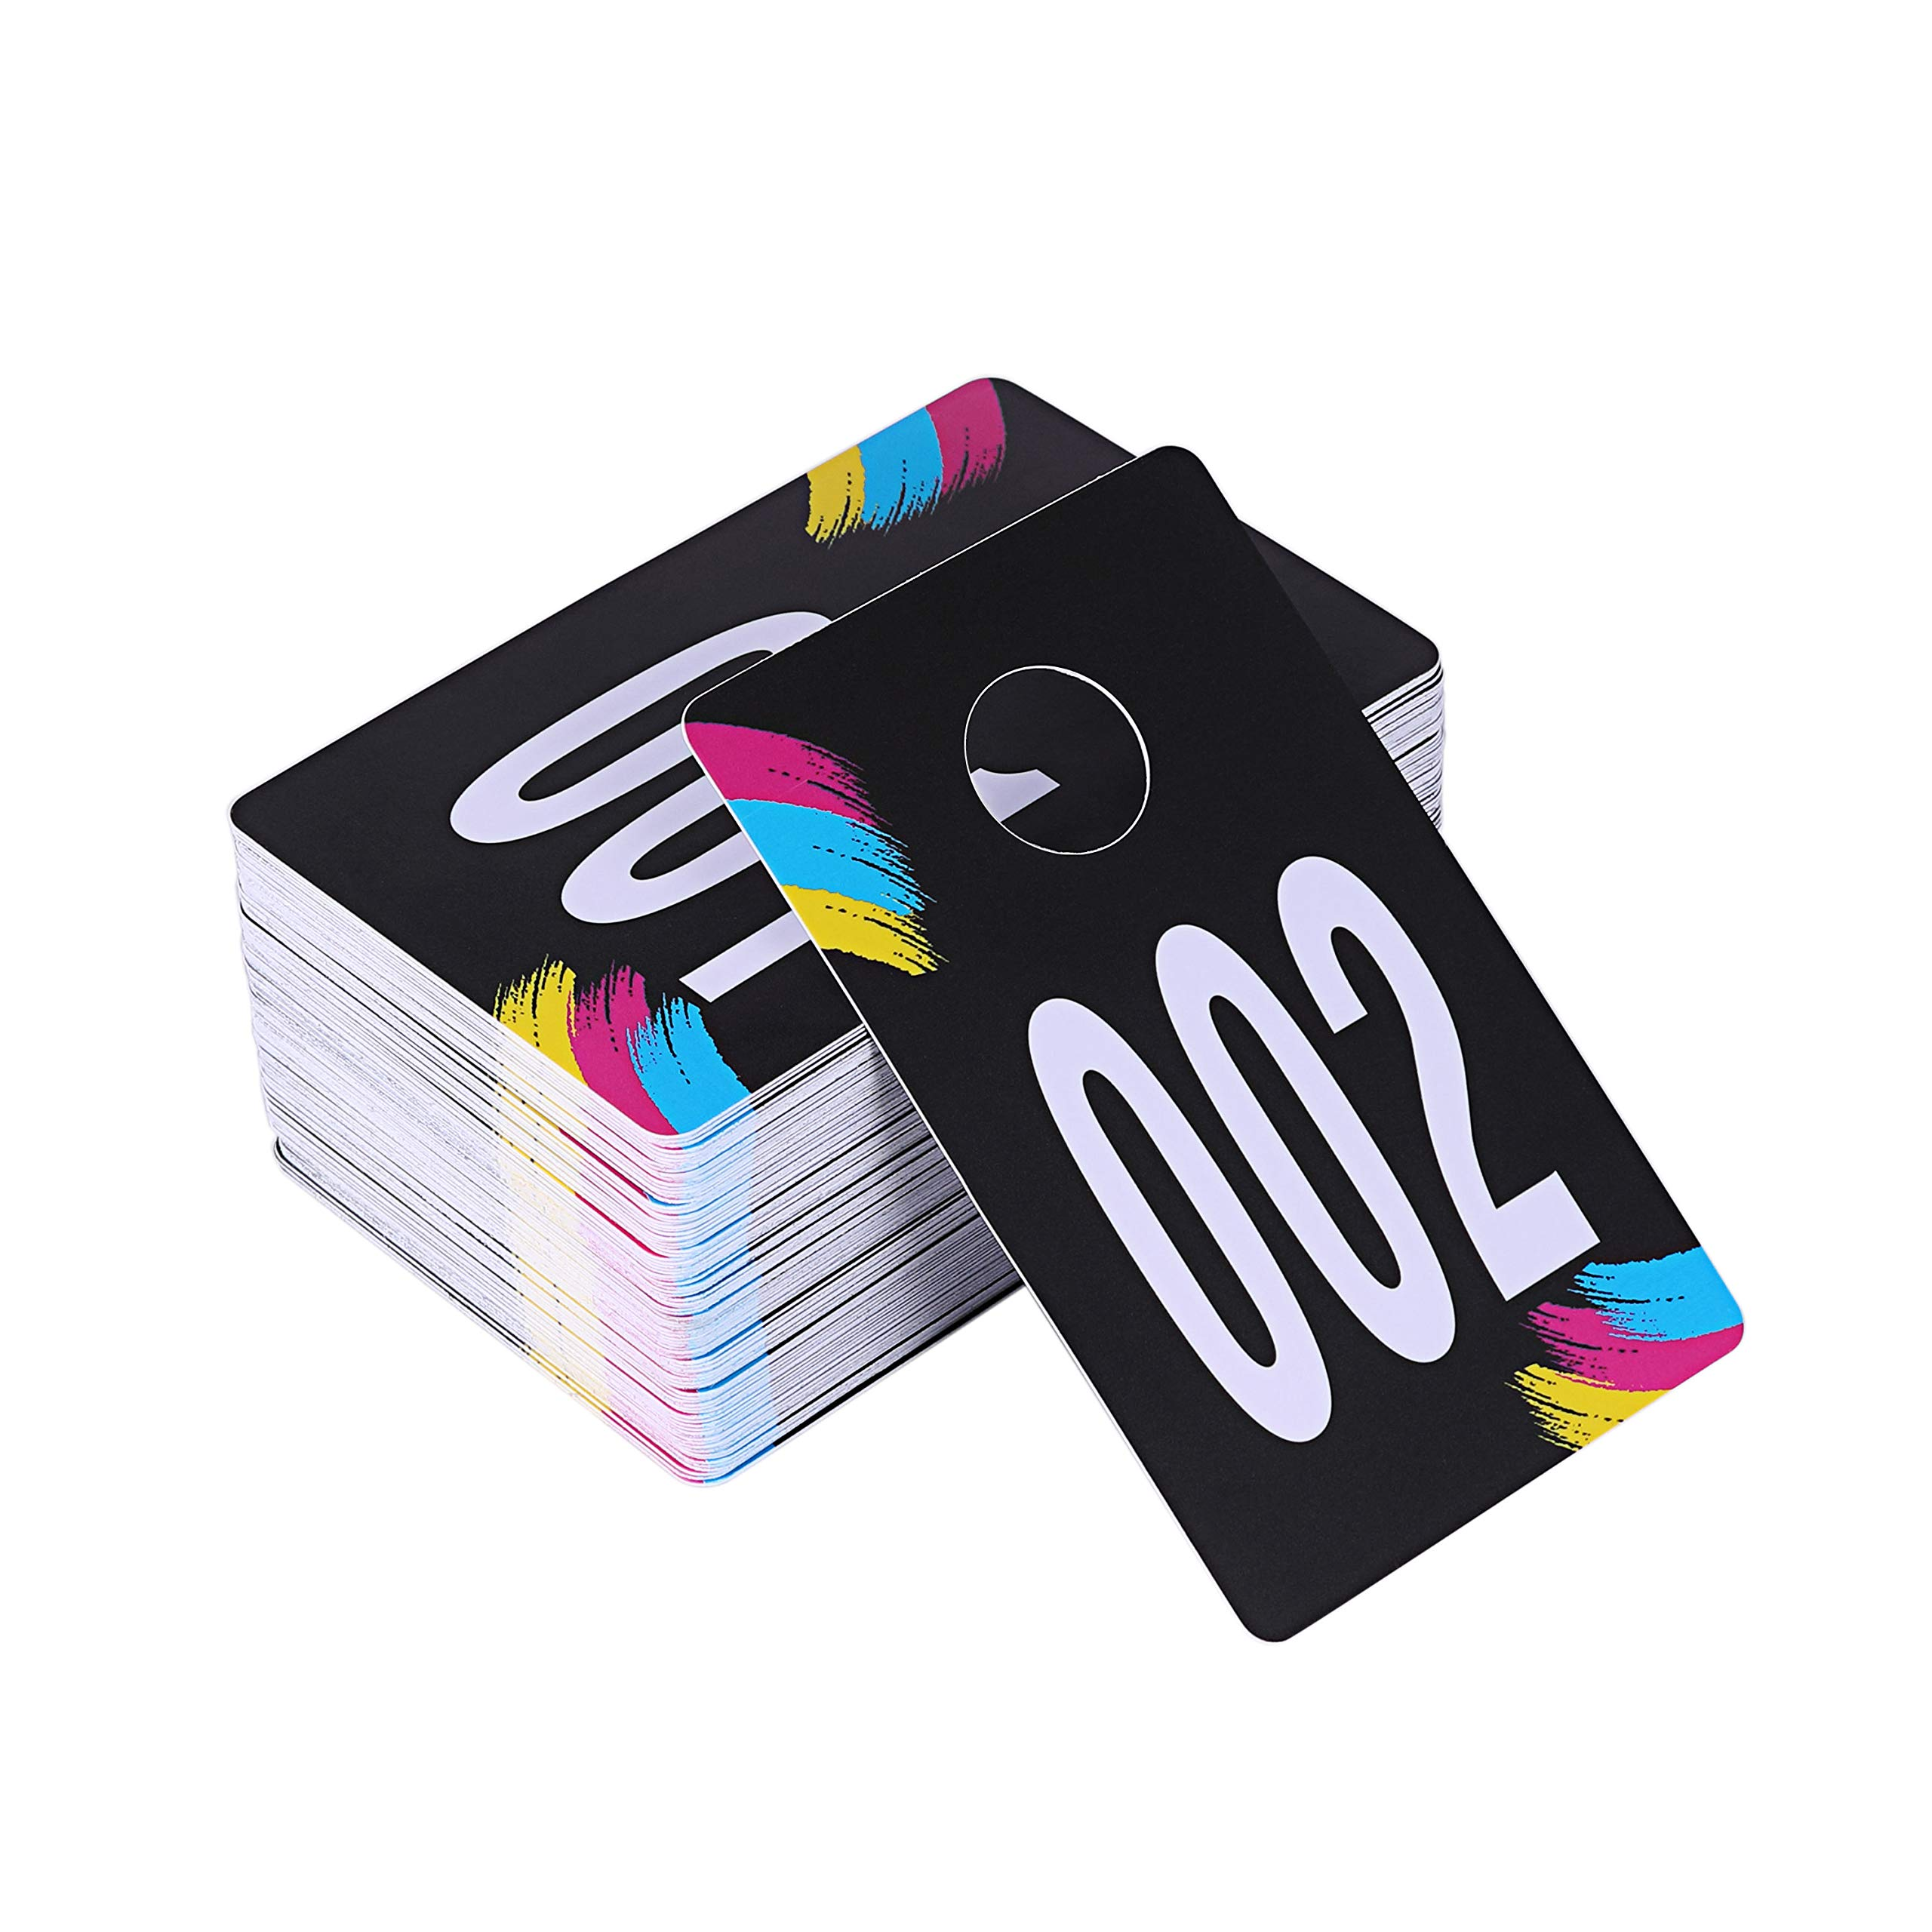 SUKIRA Live Sale Plastic Number Tags, Normal and Reverse Mirror Image Coat Room Checks for Facebook Live Sale, Reusable Lularoe Supplies, Hanger Cards for Clothes, 100 Consecutive Numbers, (001-100)